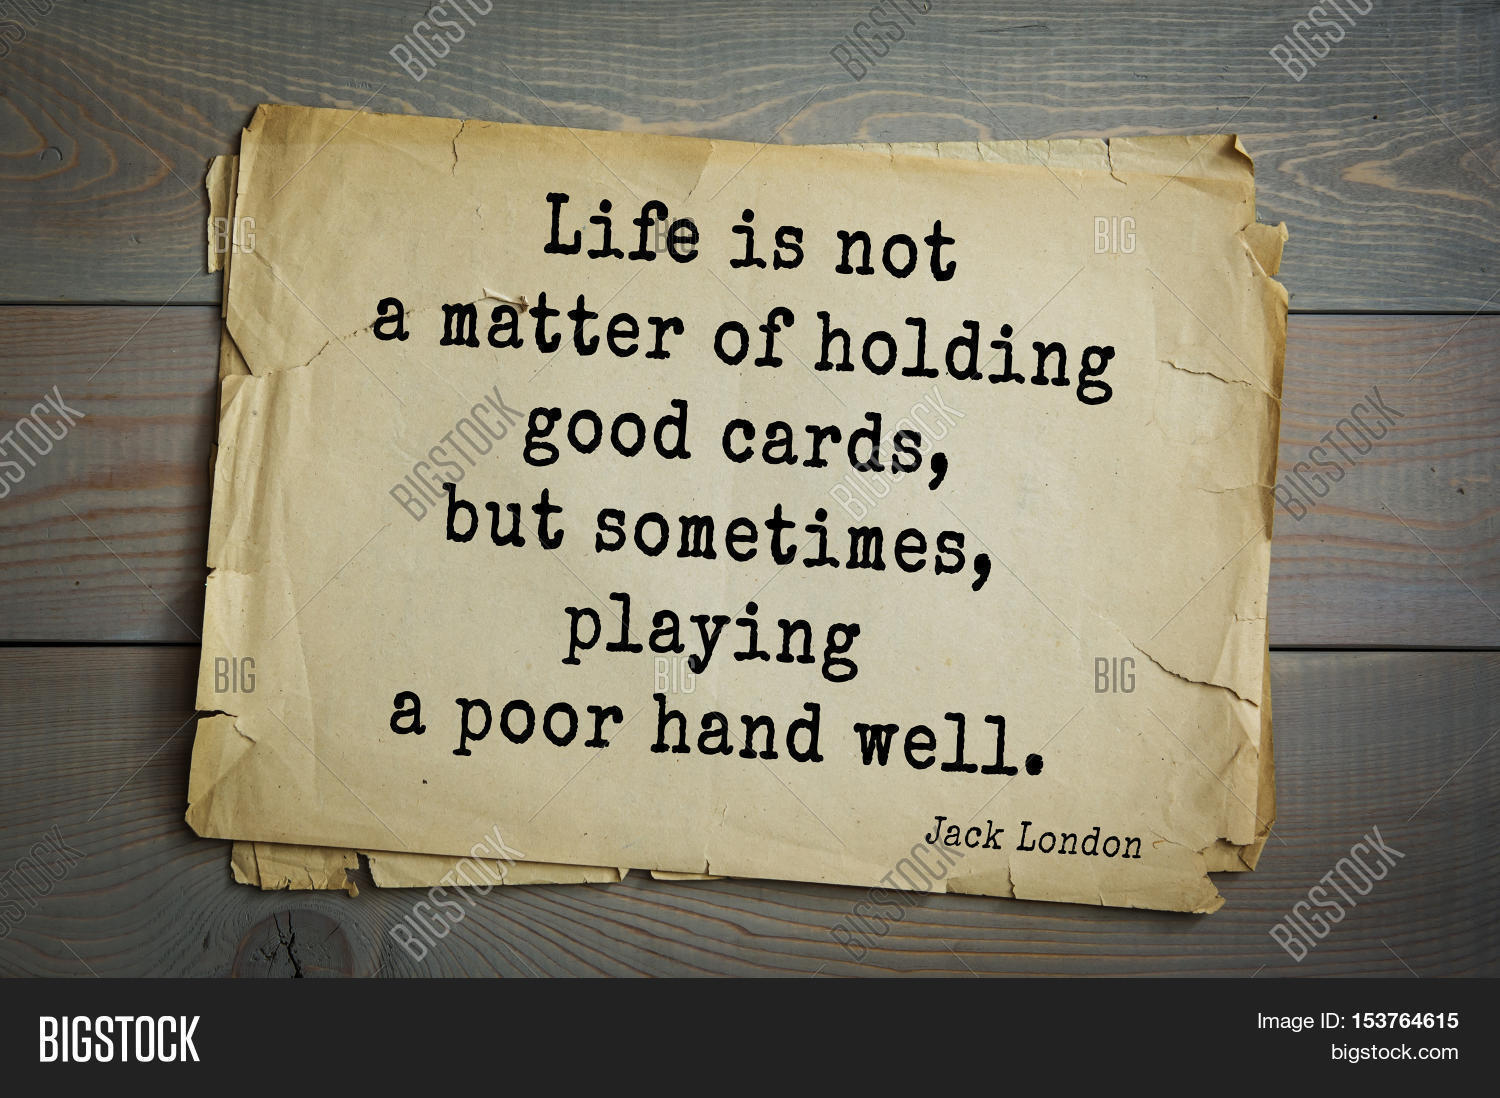 Poor Life Quotes Top 10 Quotesjack London 1876 Image & Photo  Bigstock